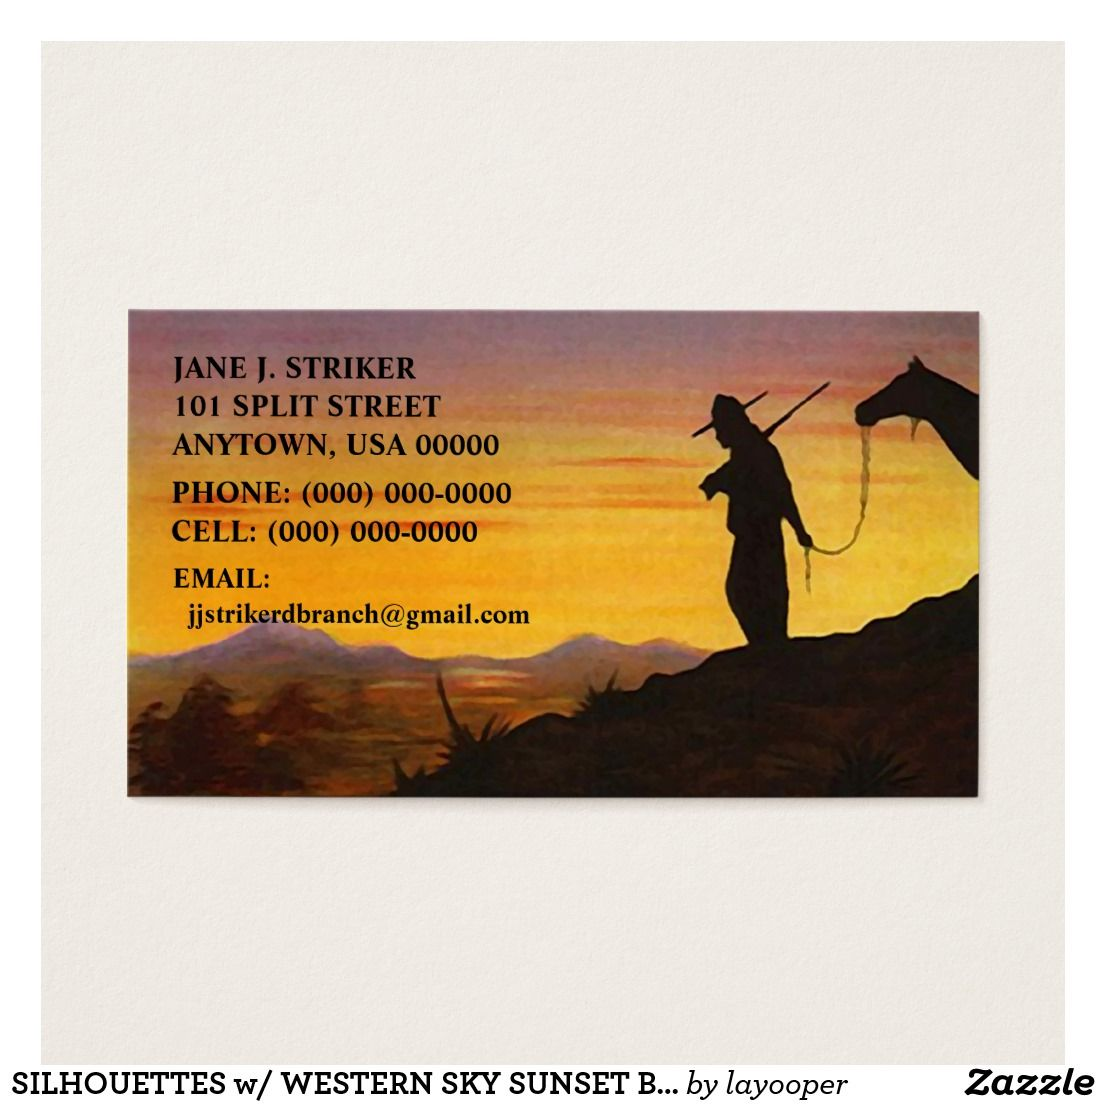 SILHOUETTES w/ WESTERN SKY SUNSET BUSINESS CARDS! Business Card ...